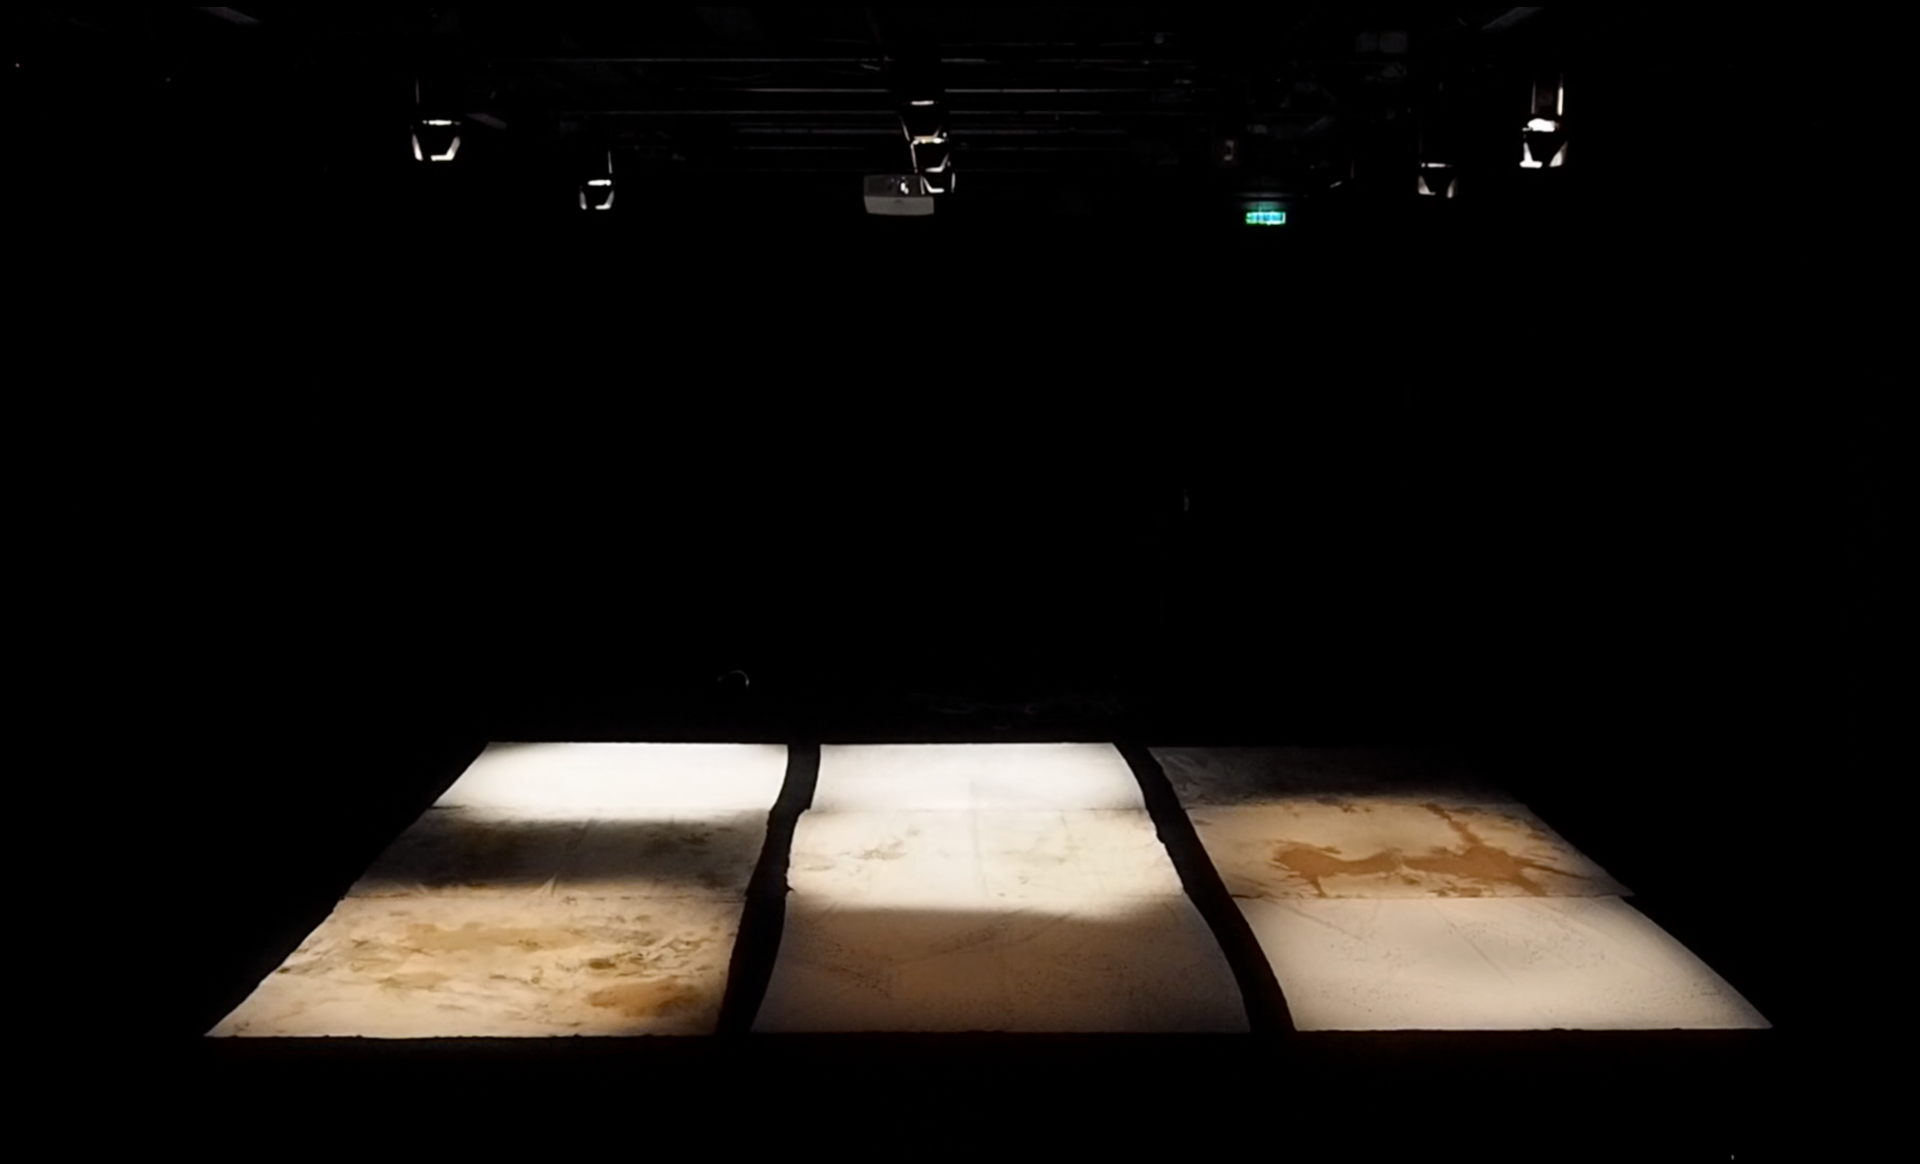 N.Lichtig, Blank Spots, nine frottages, 170x180cm each, performance (light and sound) 21 min